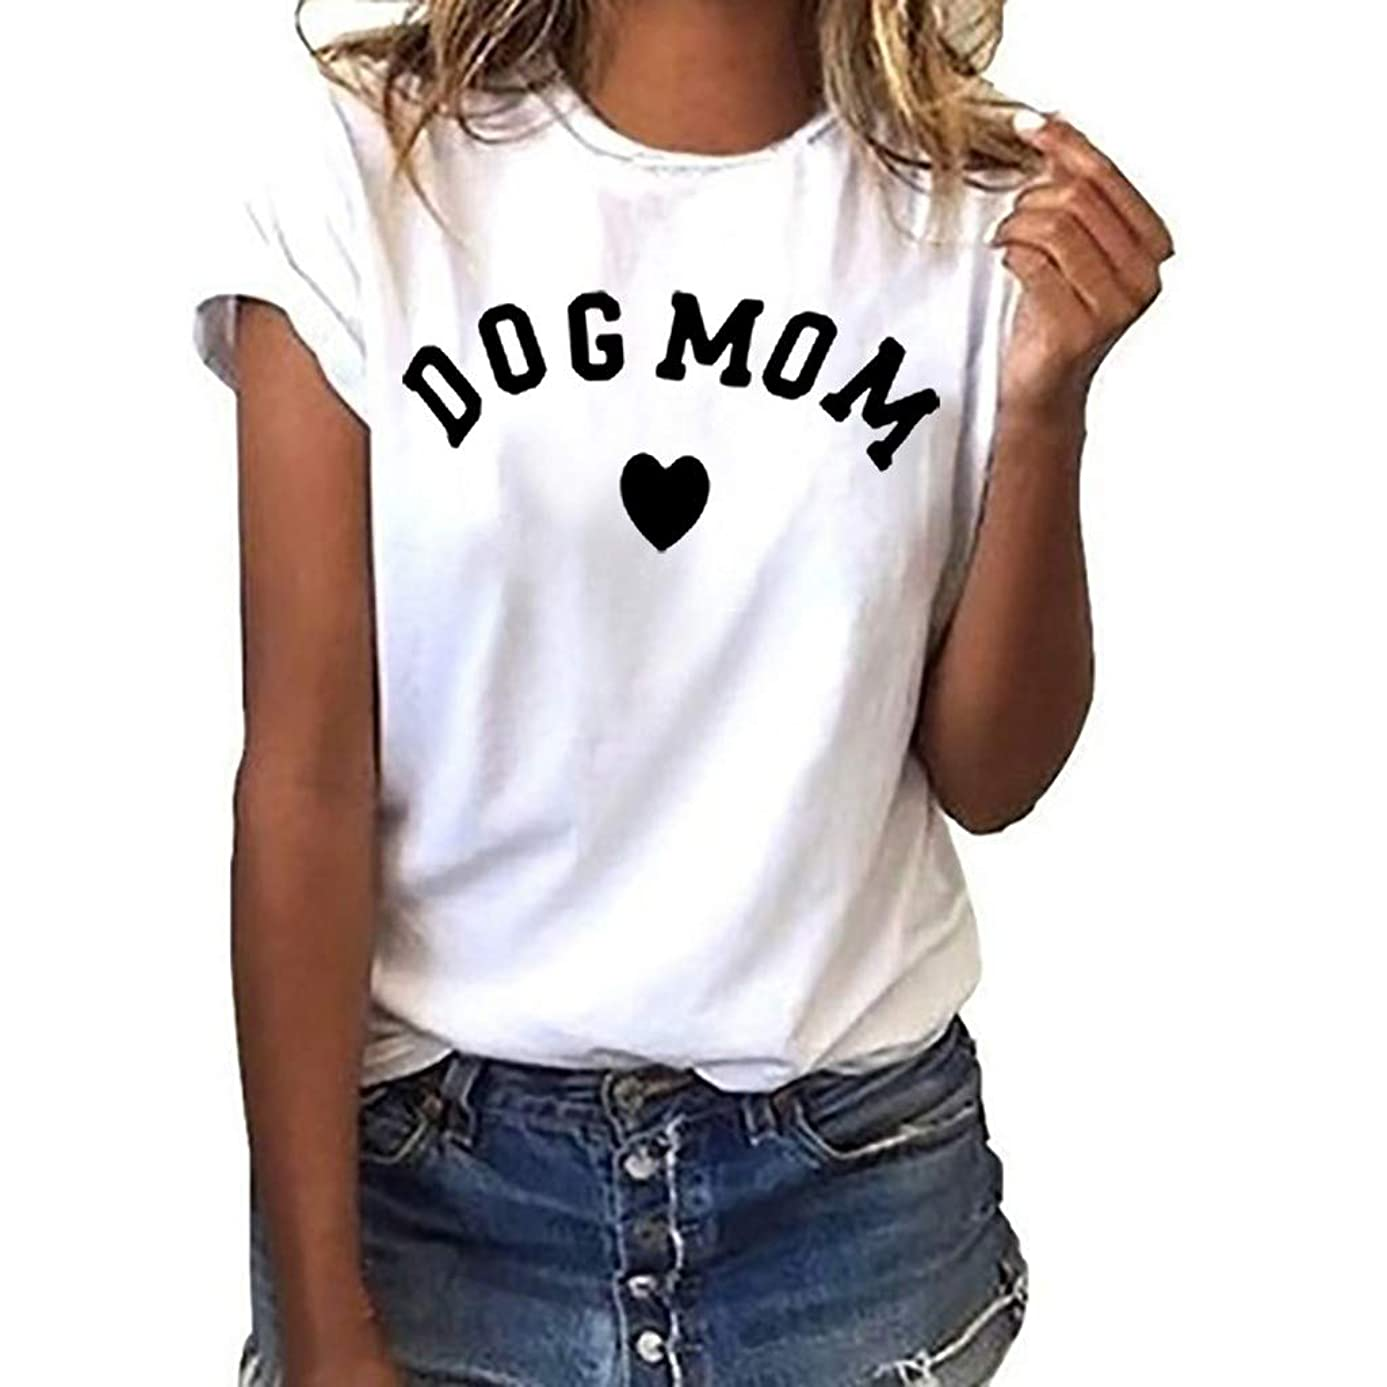 Lmx+3f Fashion Women's Short-Sleeved Print Top Casual Round Neck Loose T-Shirt Soft Comfy Short Top